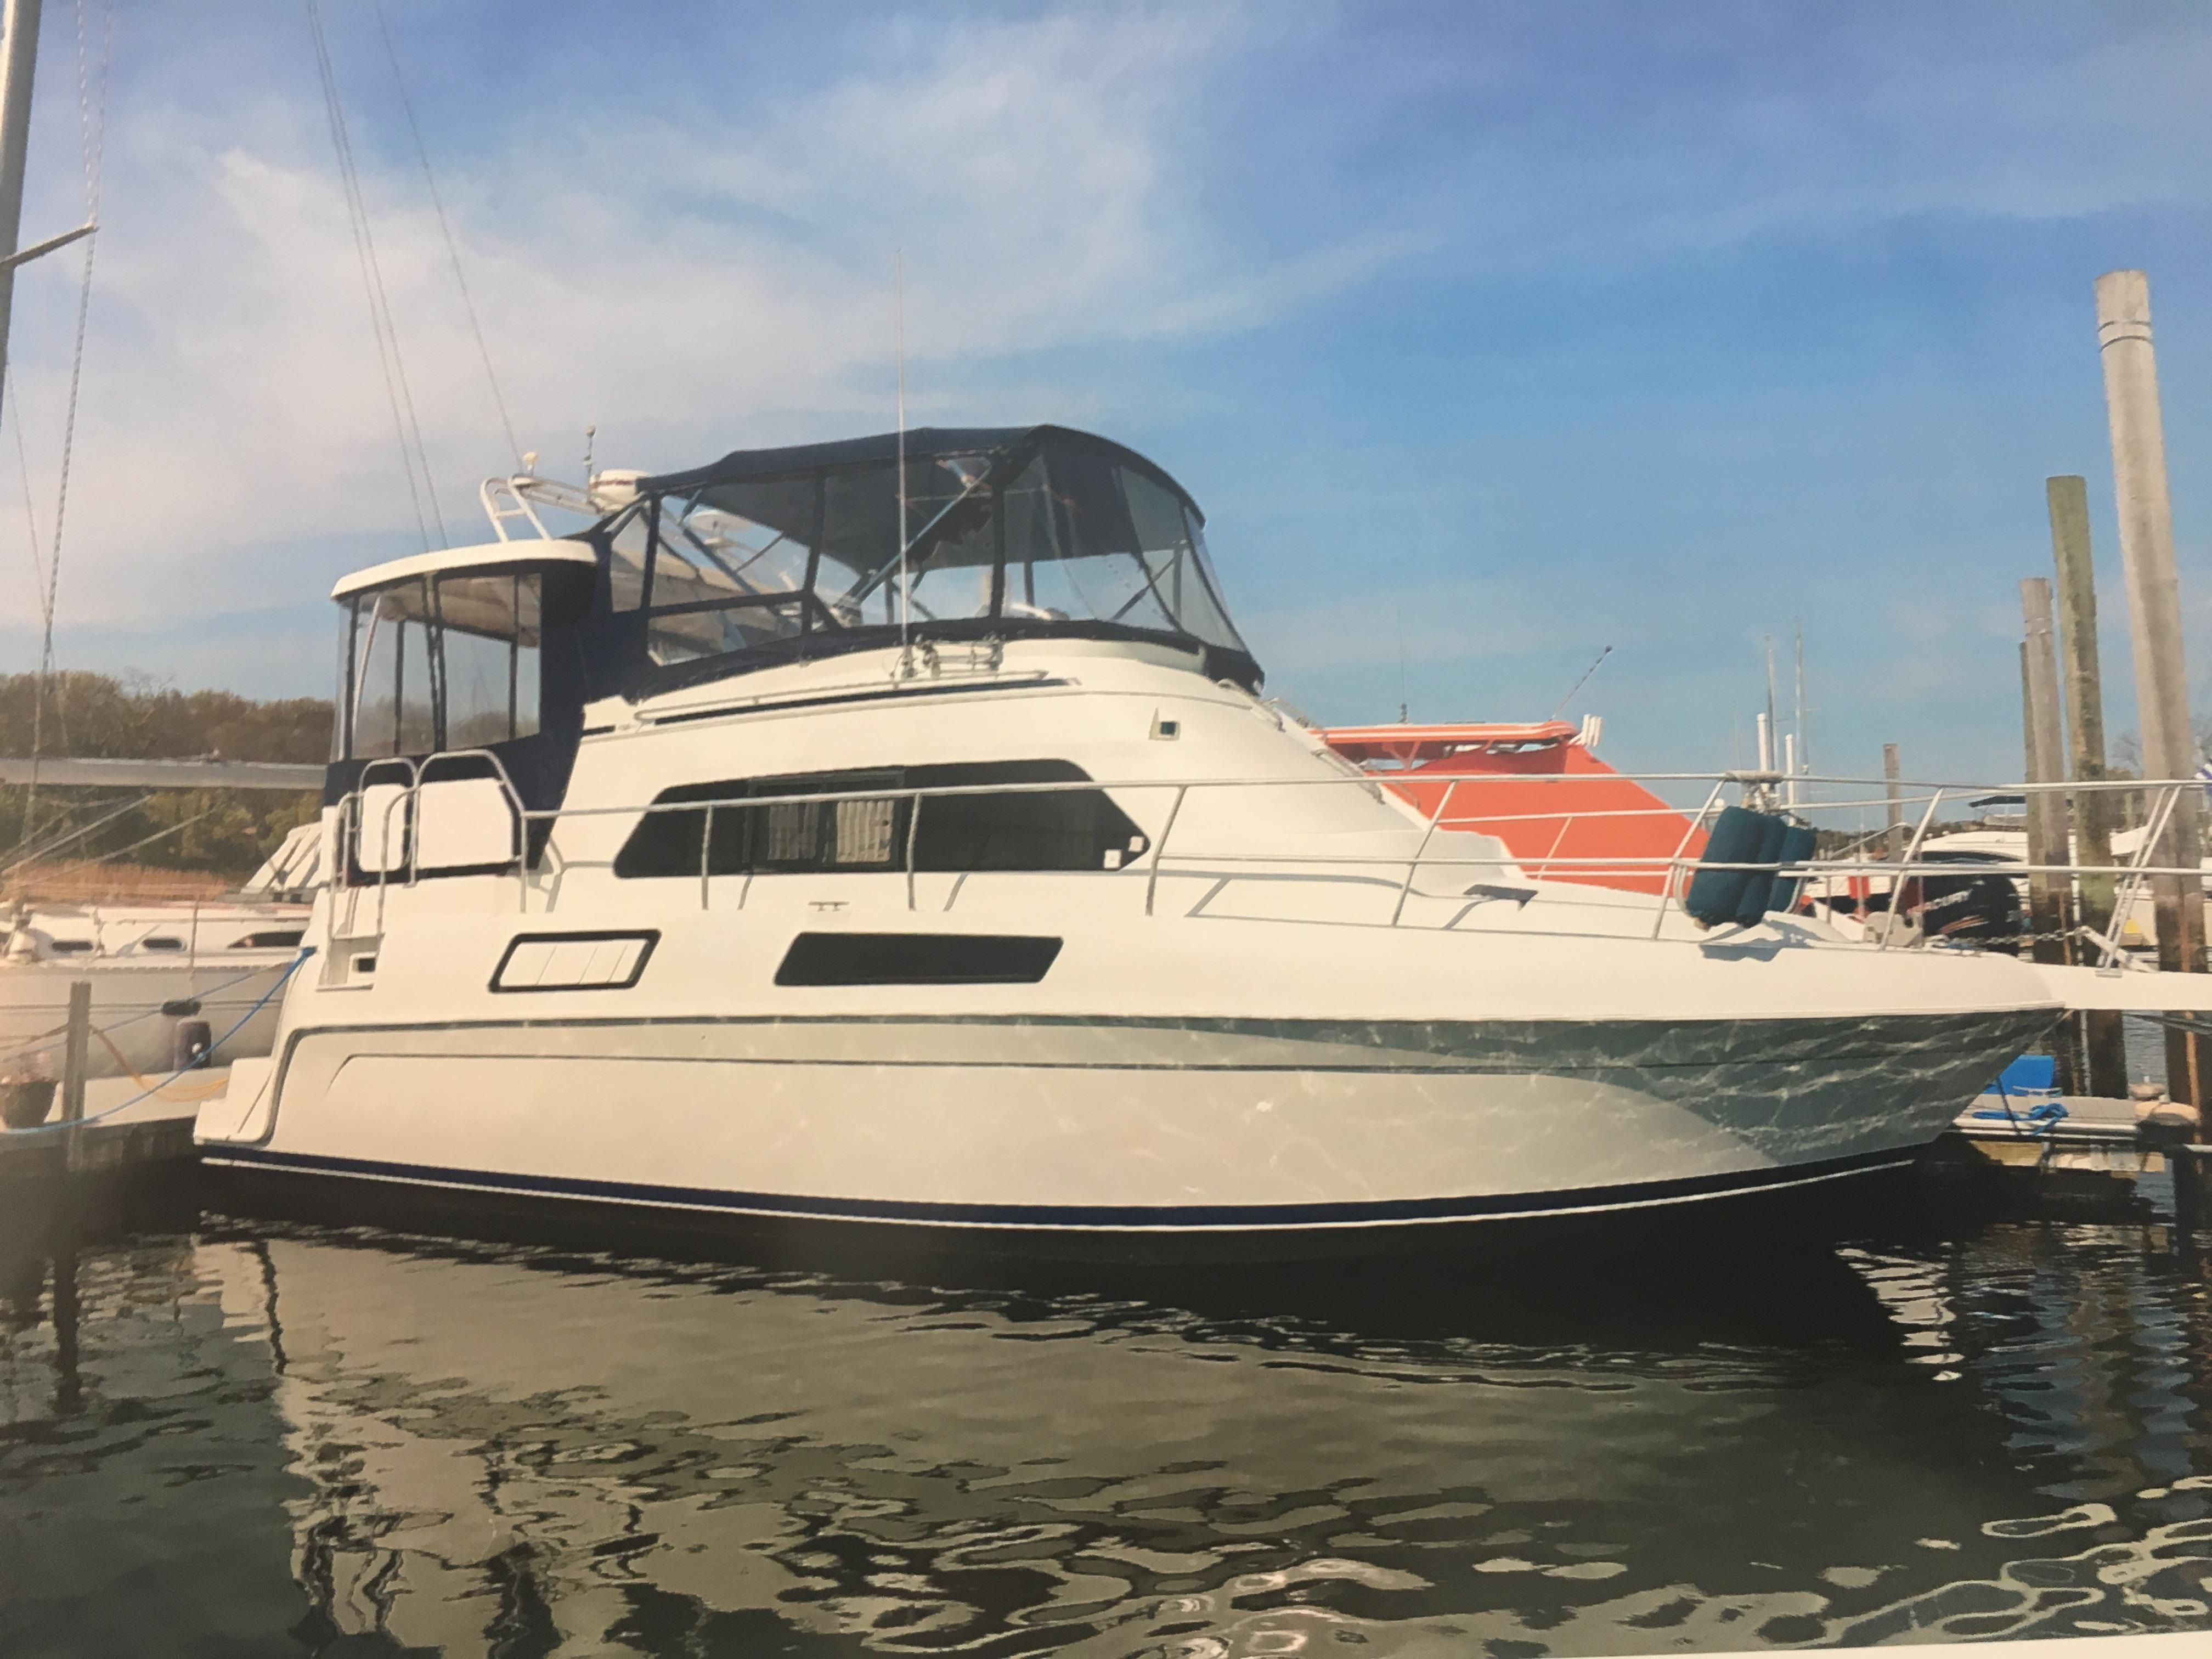 1996 mainship 37 motor yacht power boat for sale www for Large motor yachts for sale